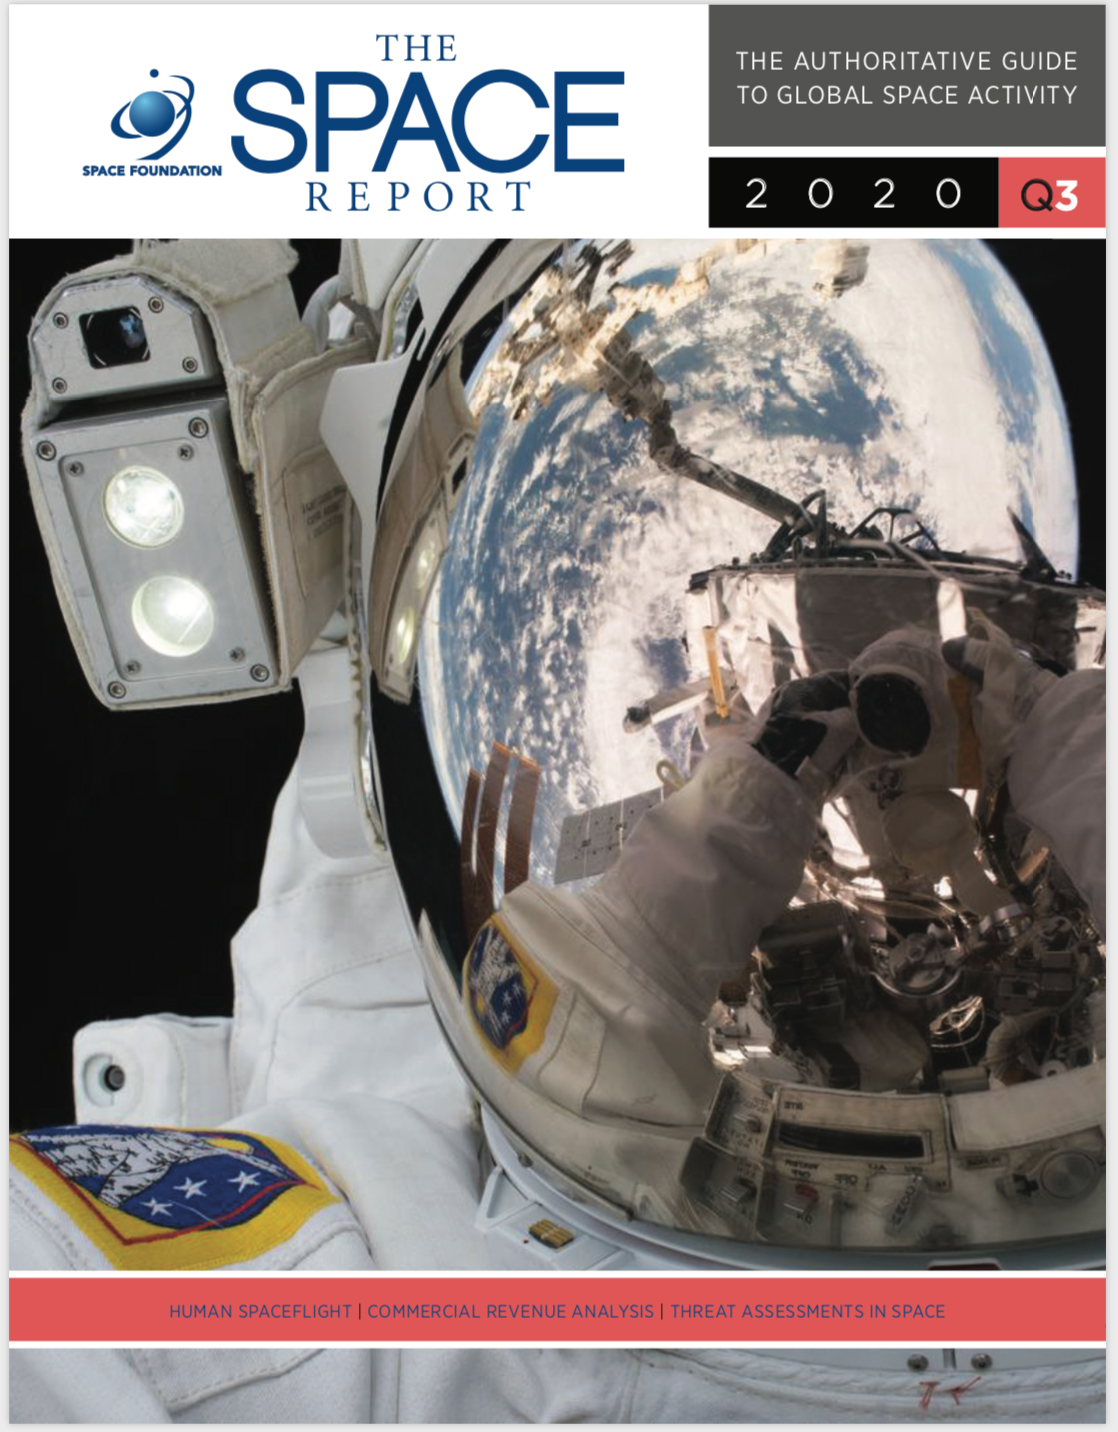 The-Space-Report-2020-Q3-cover